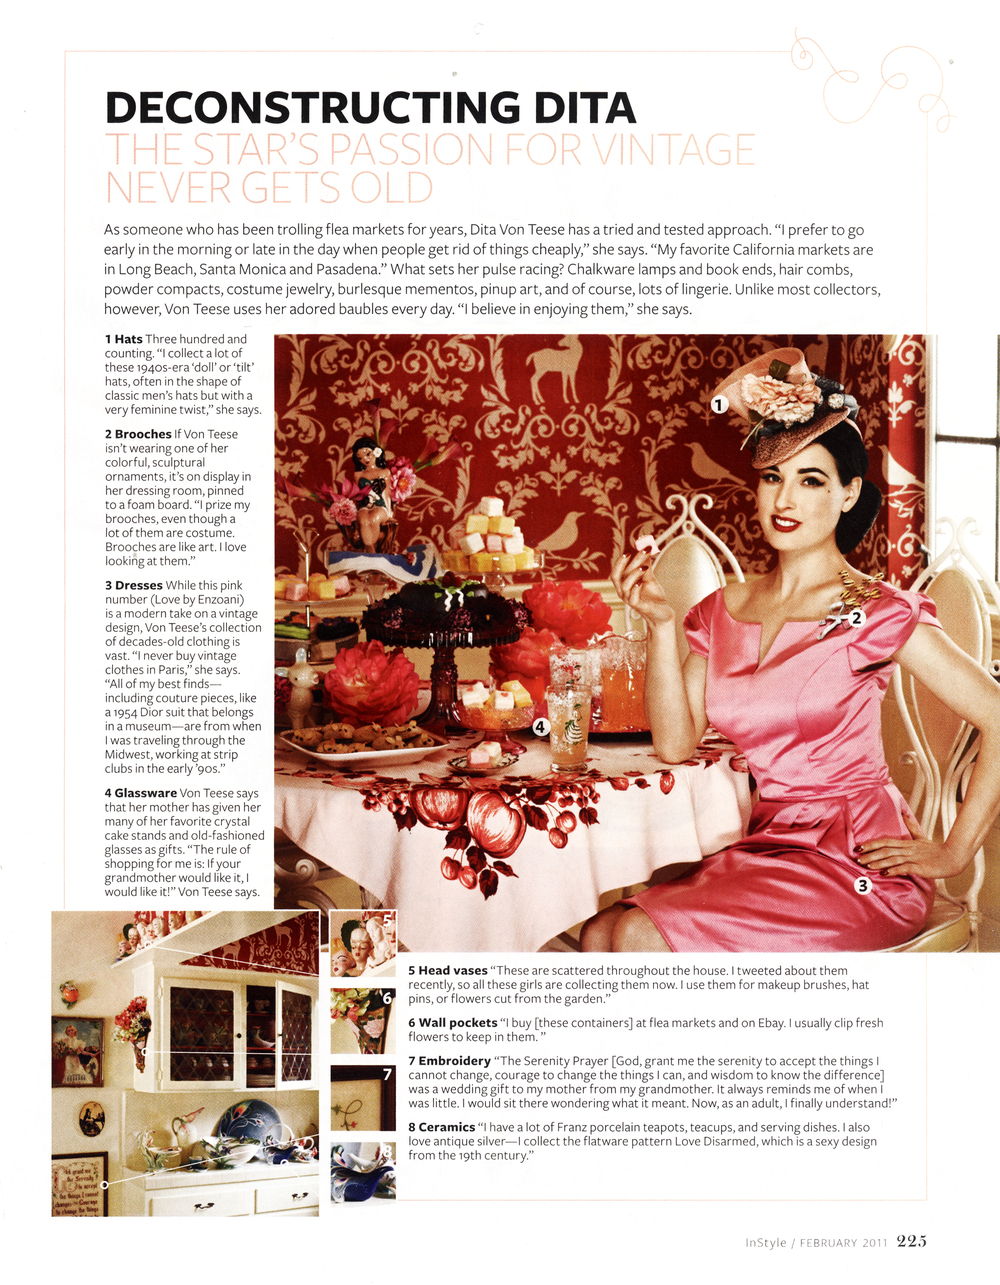 Deer Bird Damask Wallcovering printed by Astek Inc. for Dita Von Teese's home - Featured in InStyle Magazine, February 2011